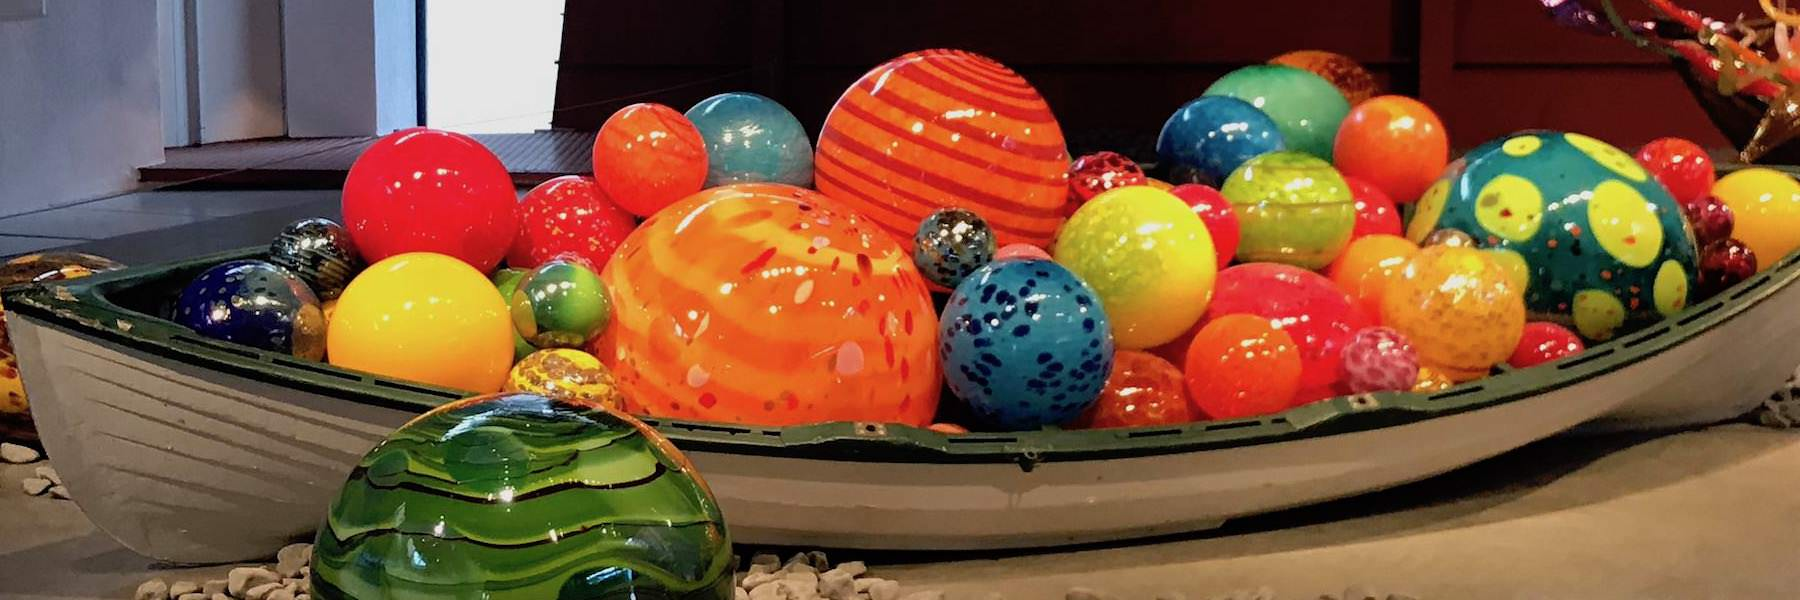 Chihuly - Ausstellung im Groninger Museum